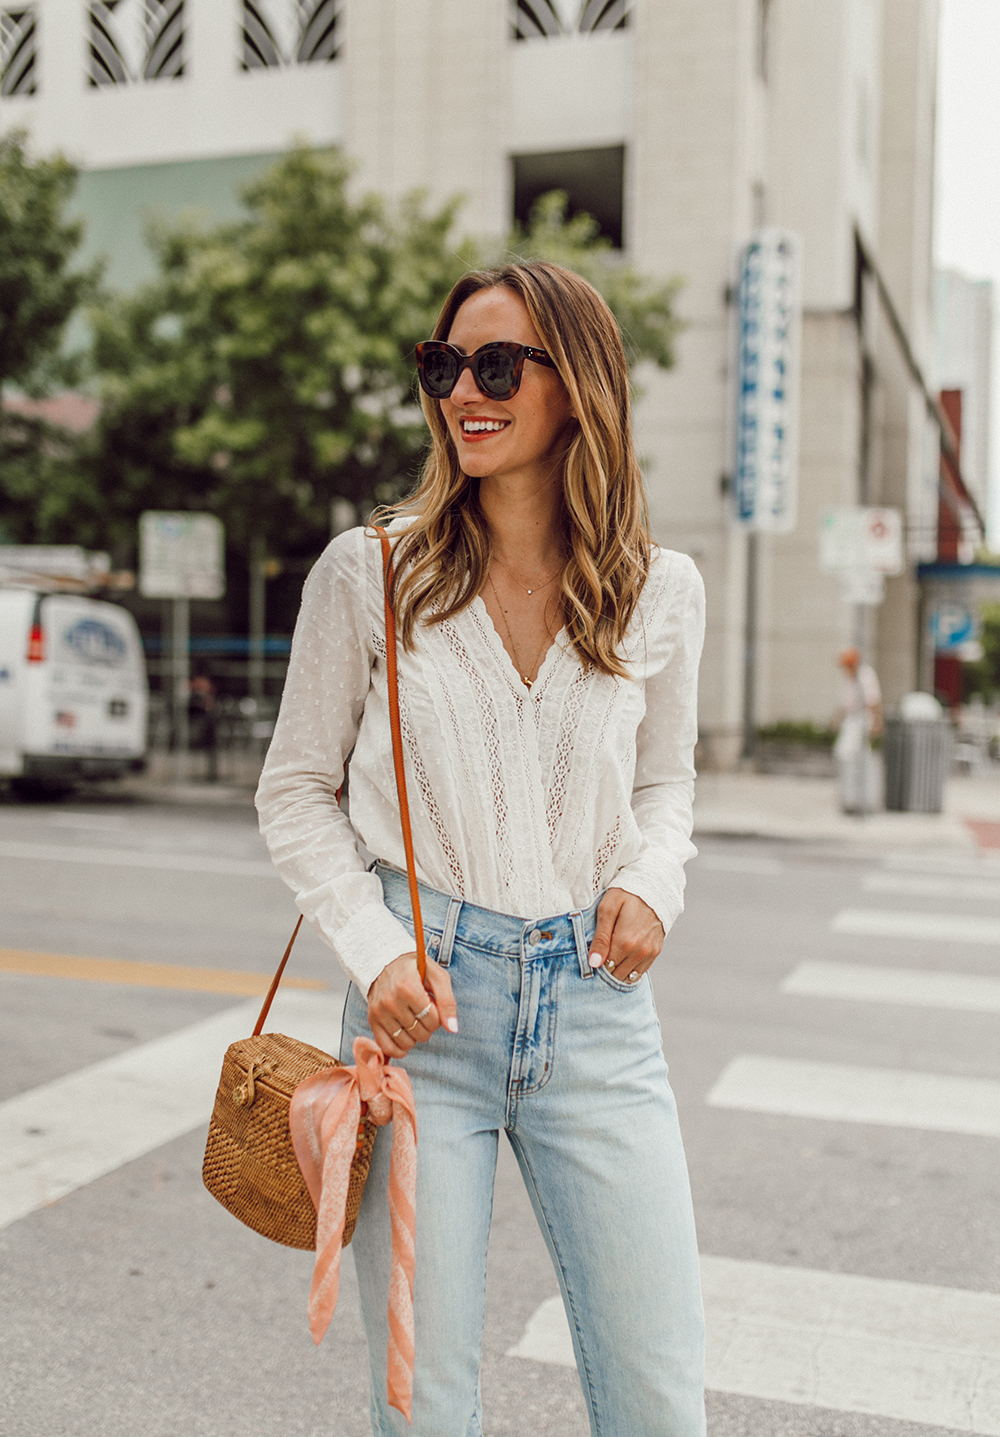 livvland-blog-olivia-watson-austin-texas-fashion-lifestyle-blogger-sezane-lace-deep-v-top-rattan-bag-madewell-summer-jeans-11